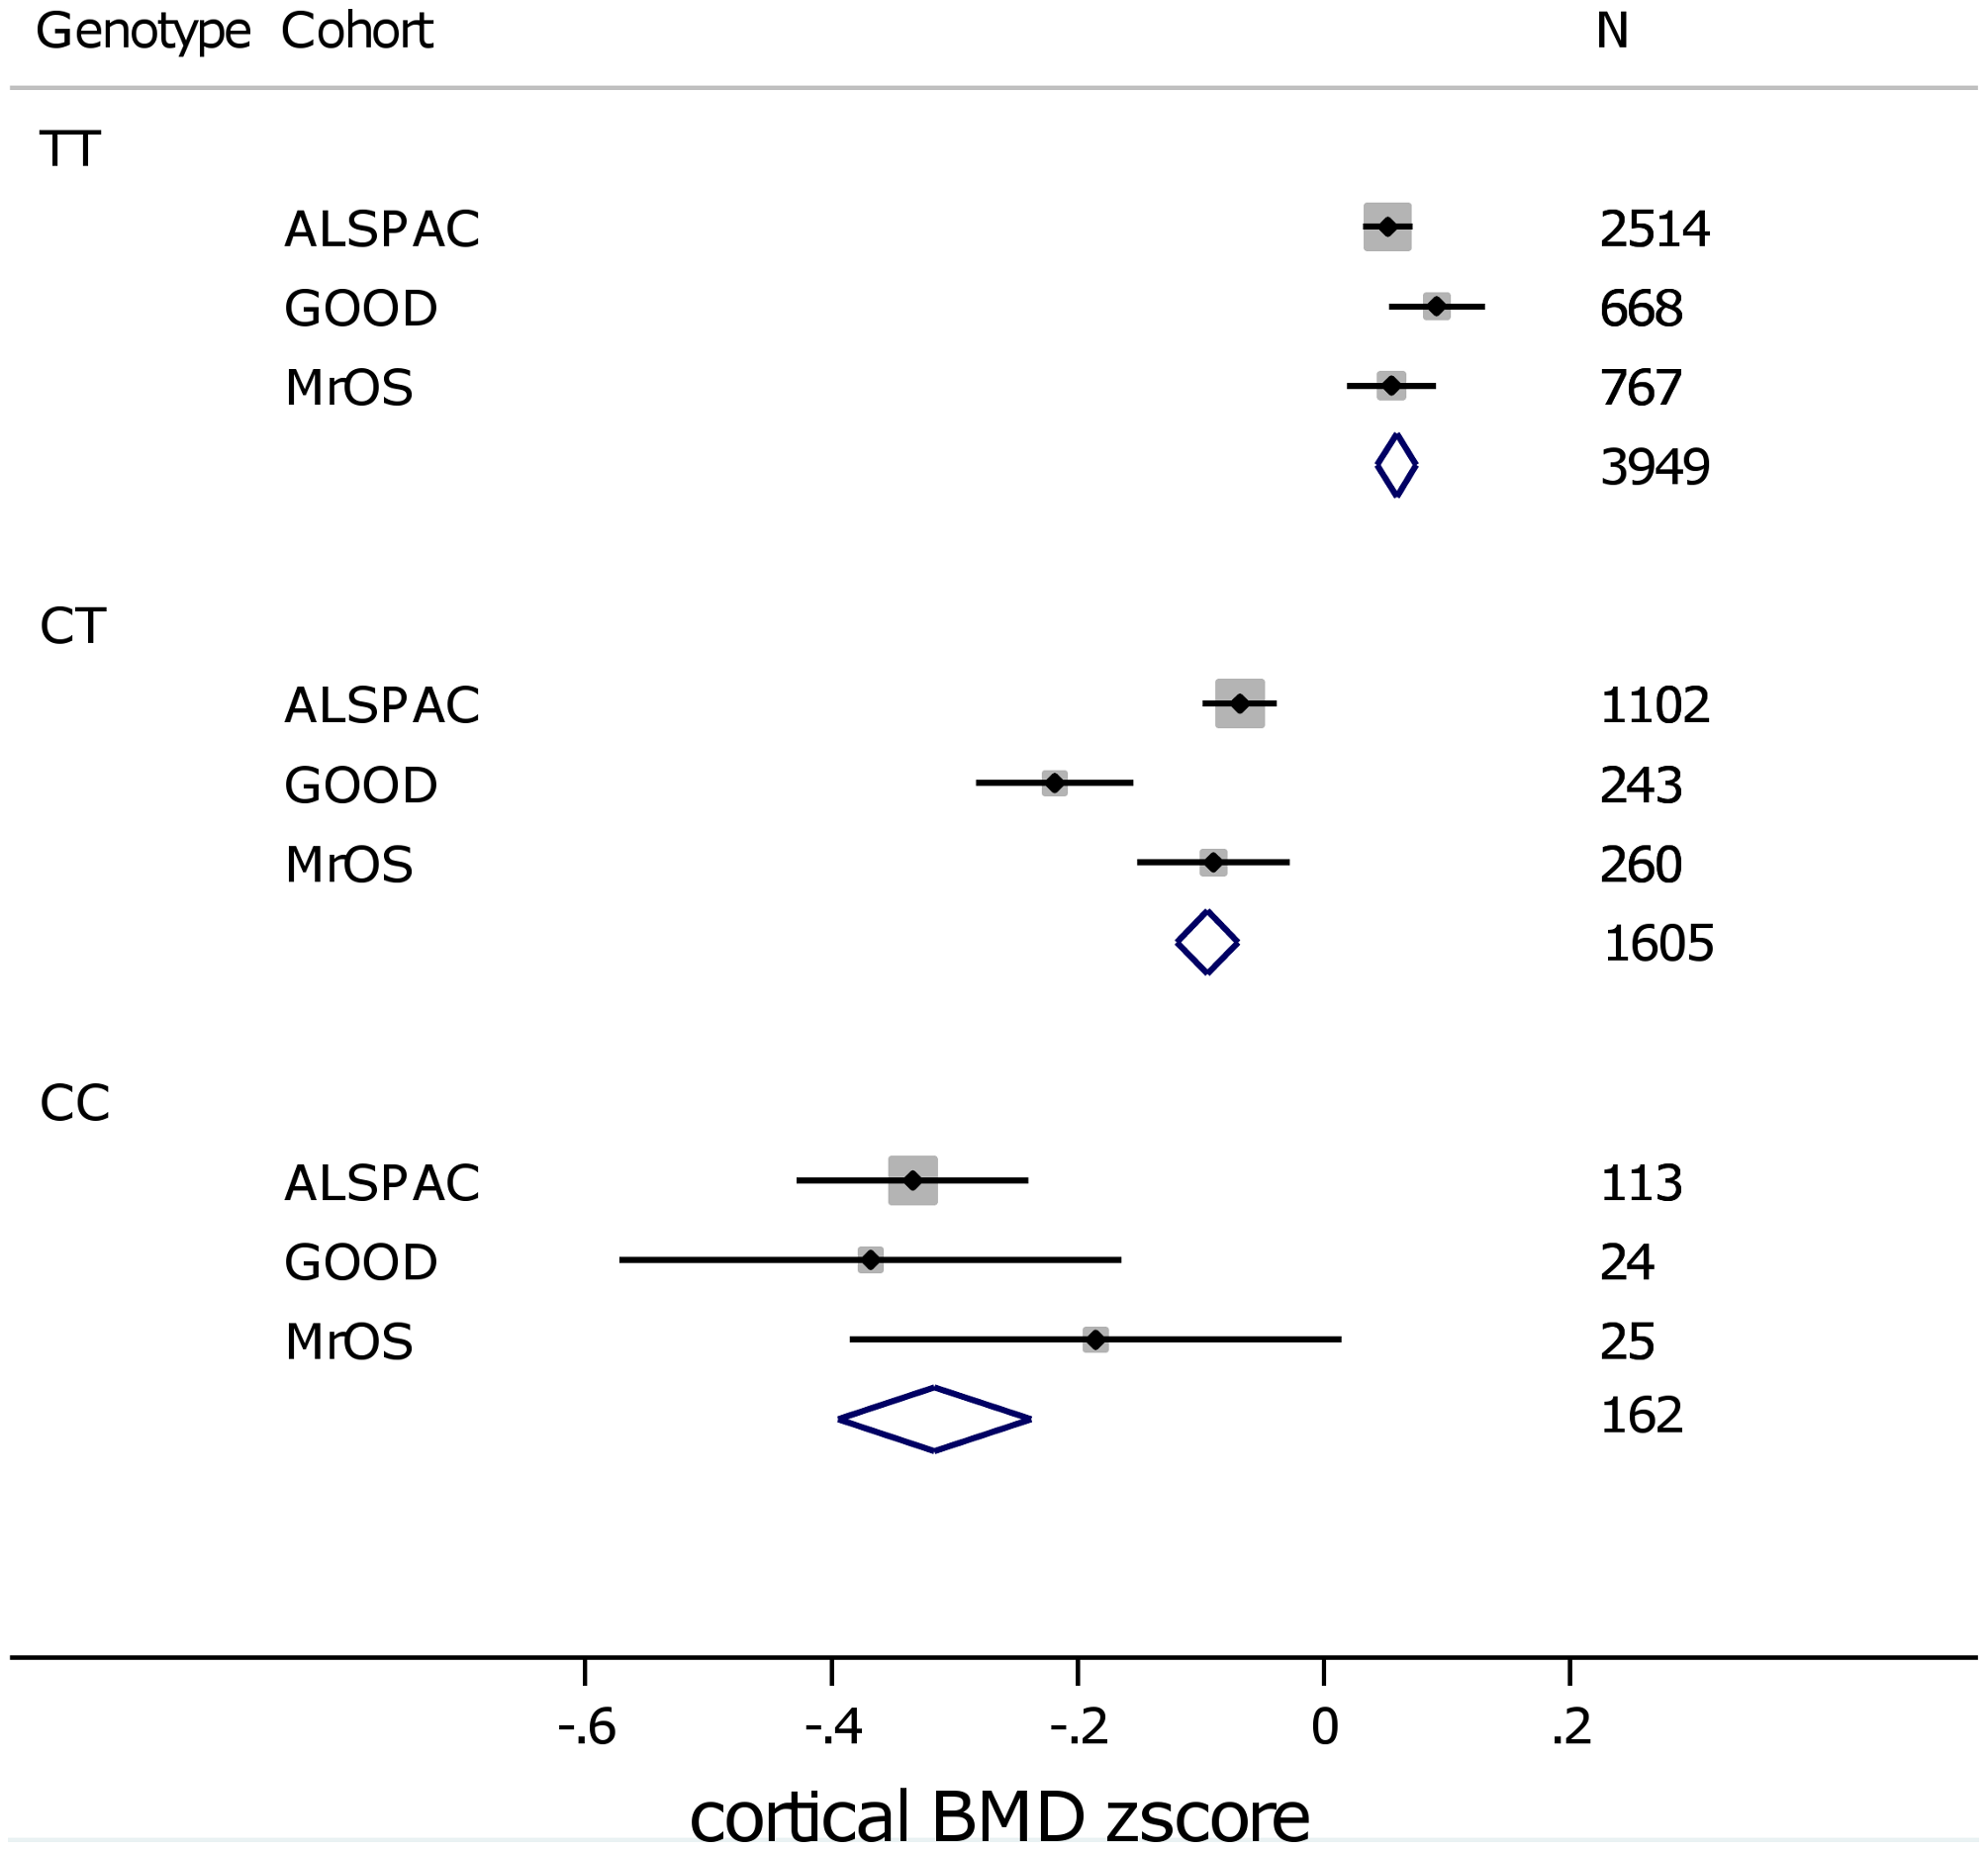 Mean (and standard error) BMD<sub>C</sub> z-scores per rs1021188 genotype in each of the cohorts.